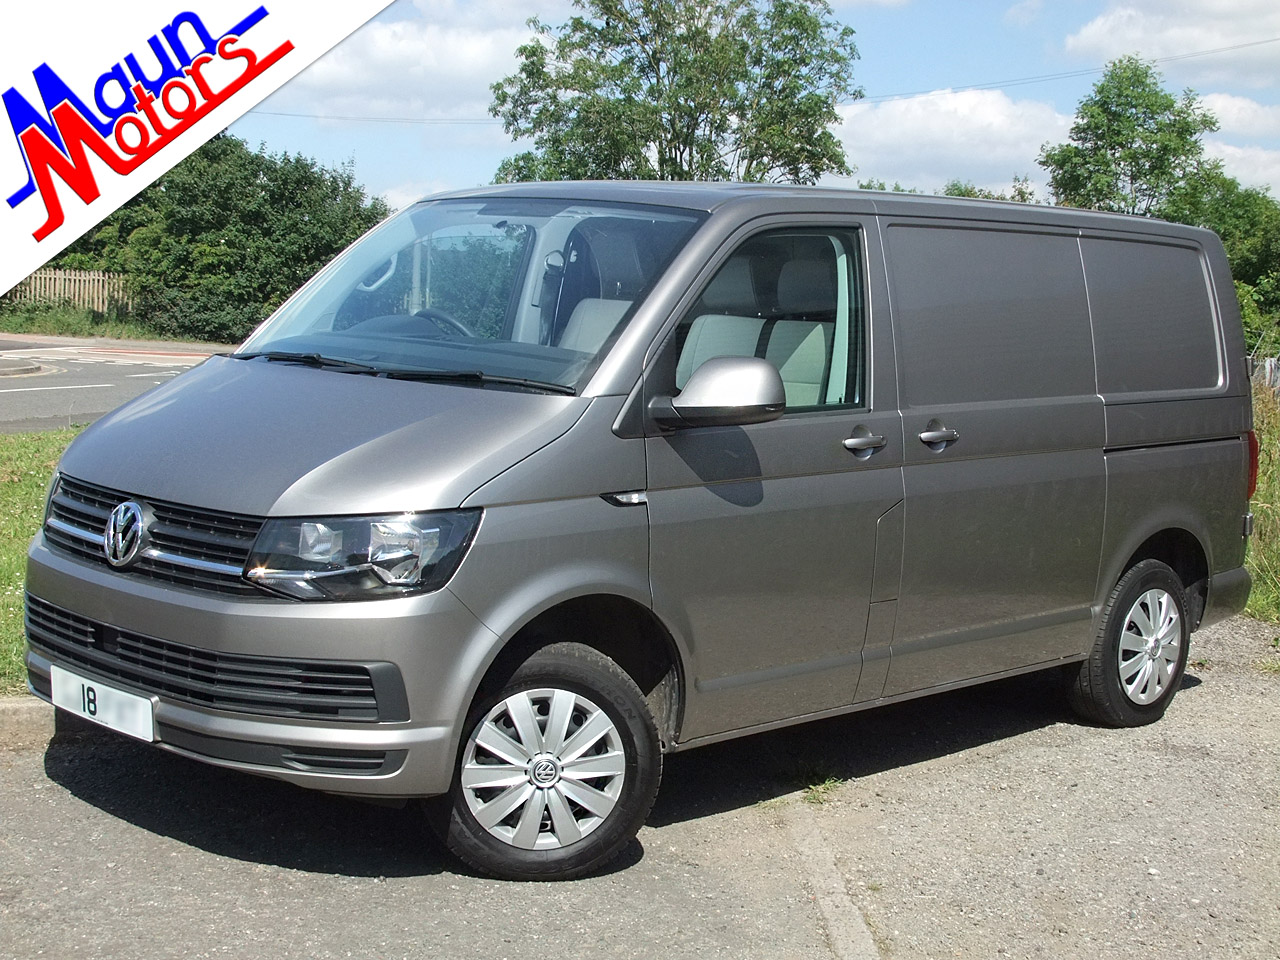 Volkswagen Transporter used vans for sale